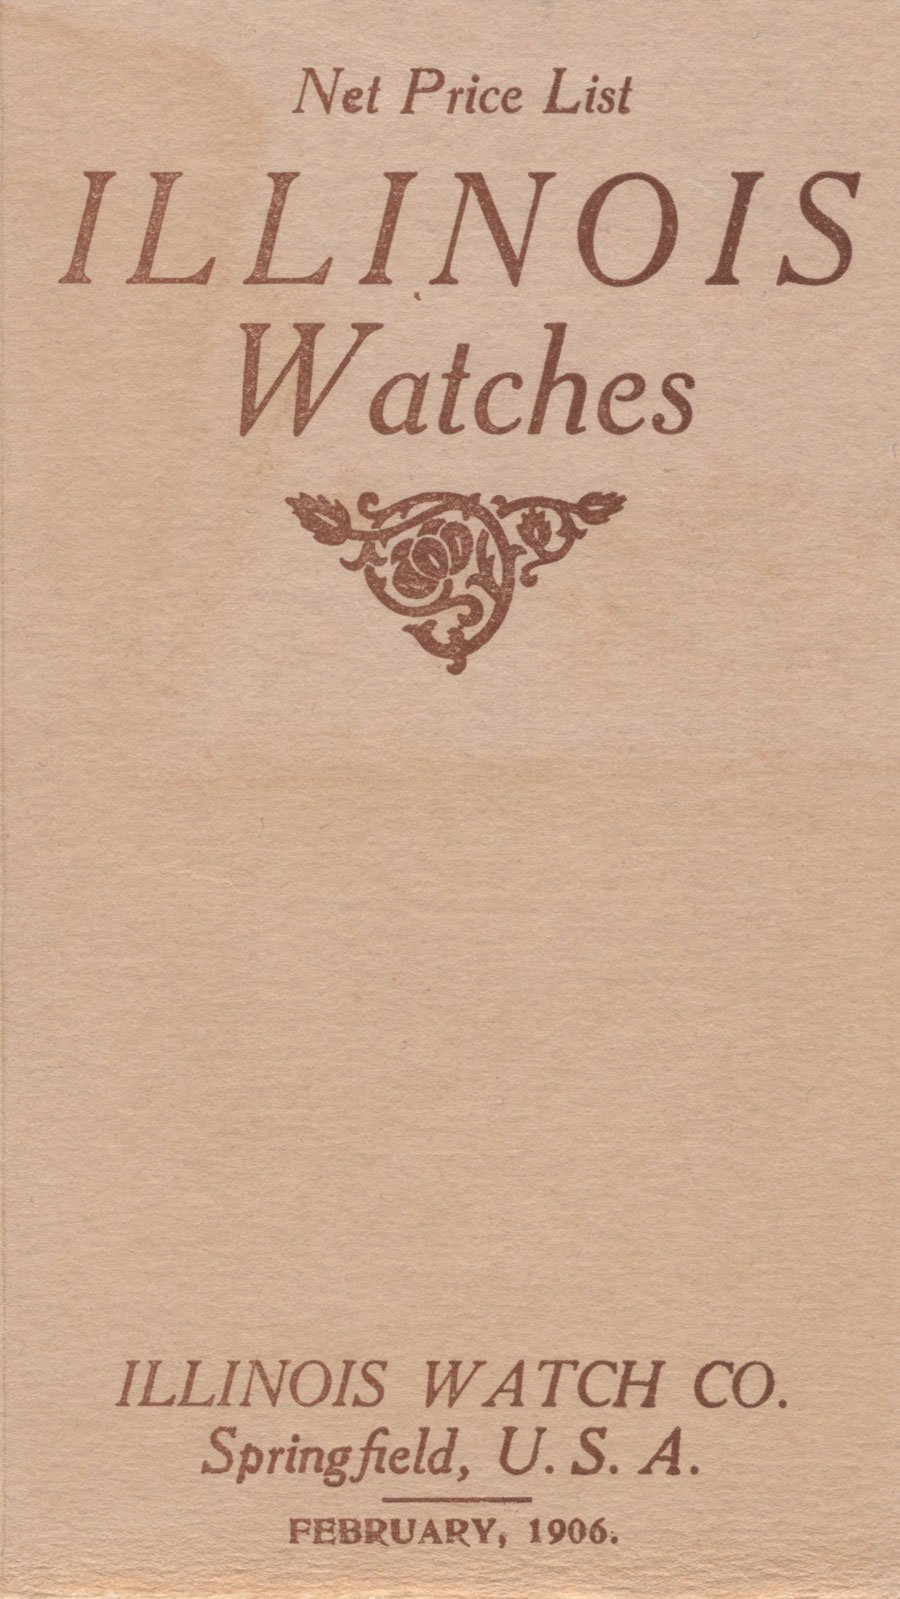 Net Price List Illinois Watches Catalog: February 1906 Cover Image